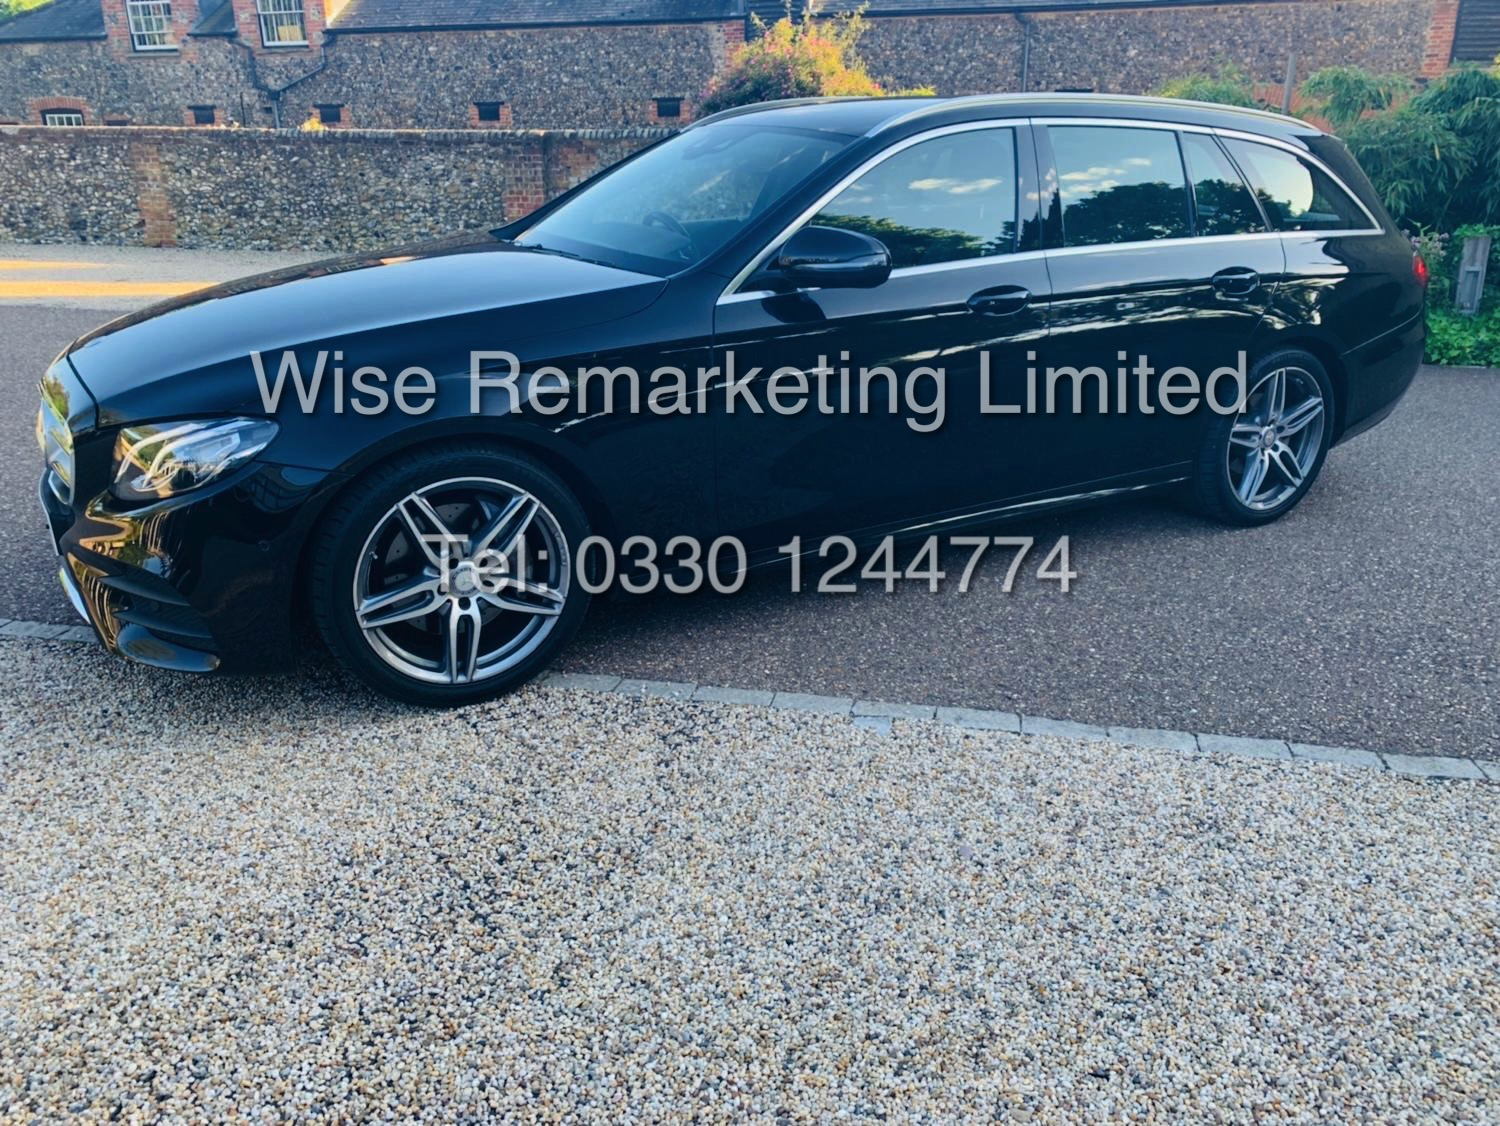 MERCEDES E CLASS ESTATE E220D AMG LINE 2017 / 9G -TRONIC / *LOW MILES* / 1 OWNER - Image 3 of 42